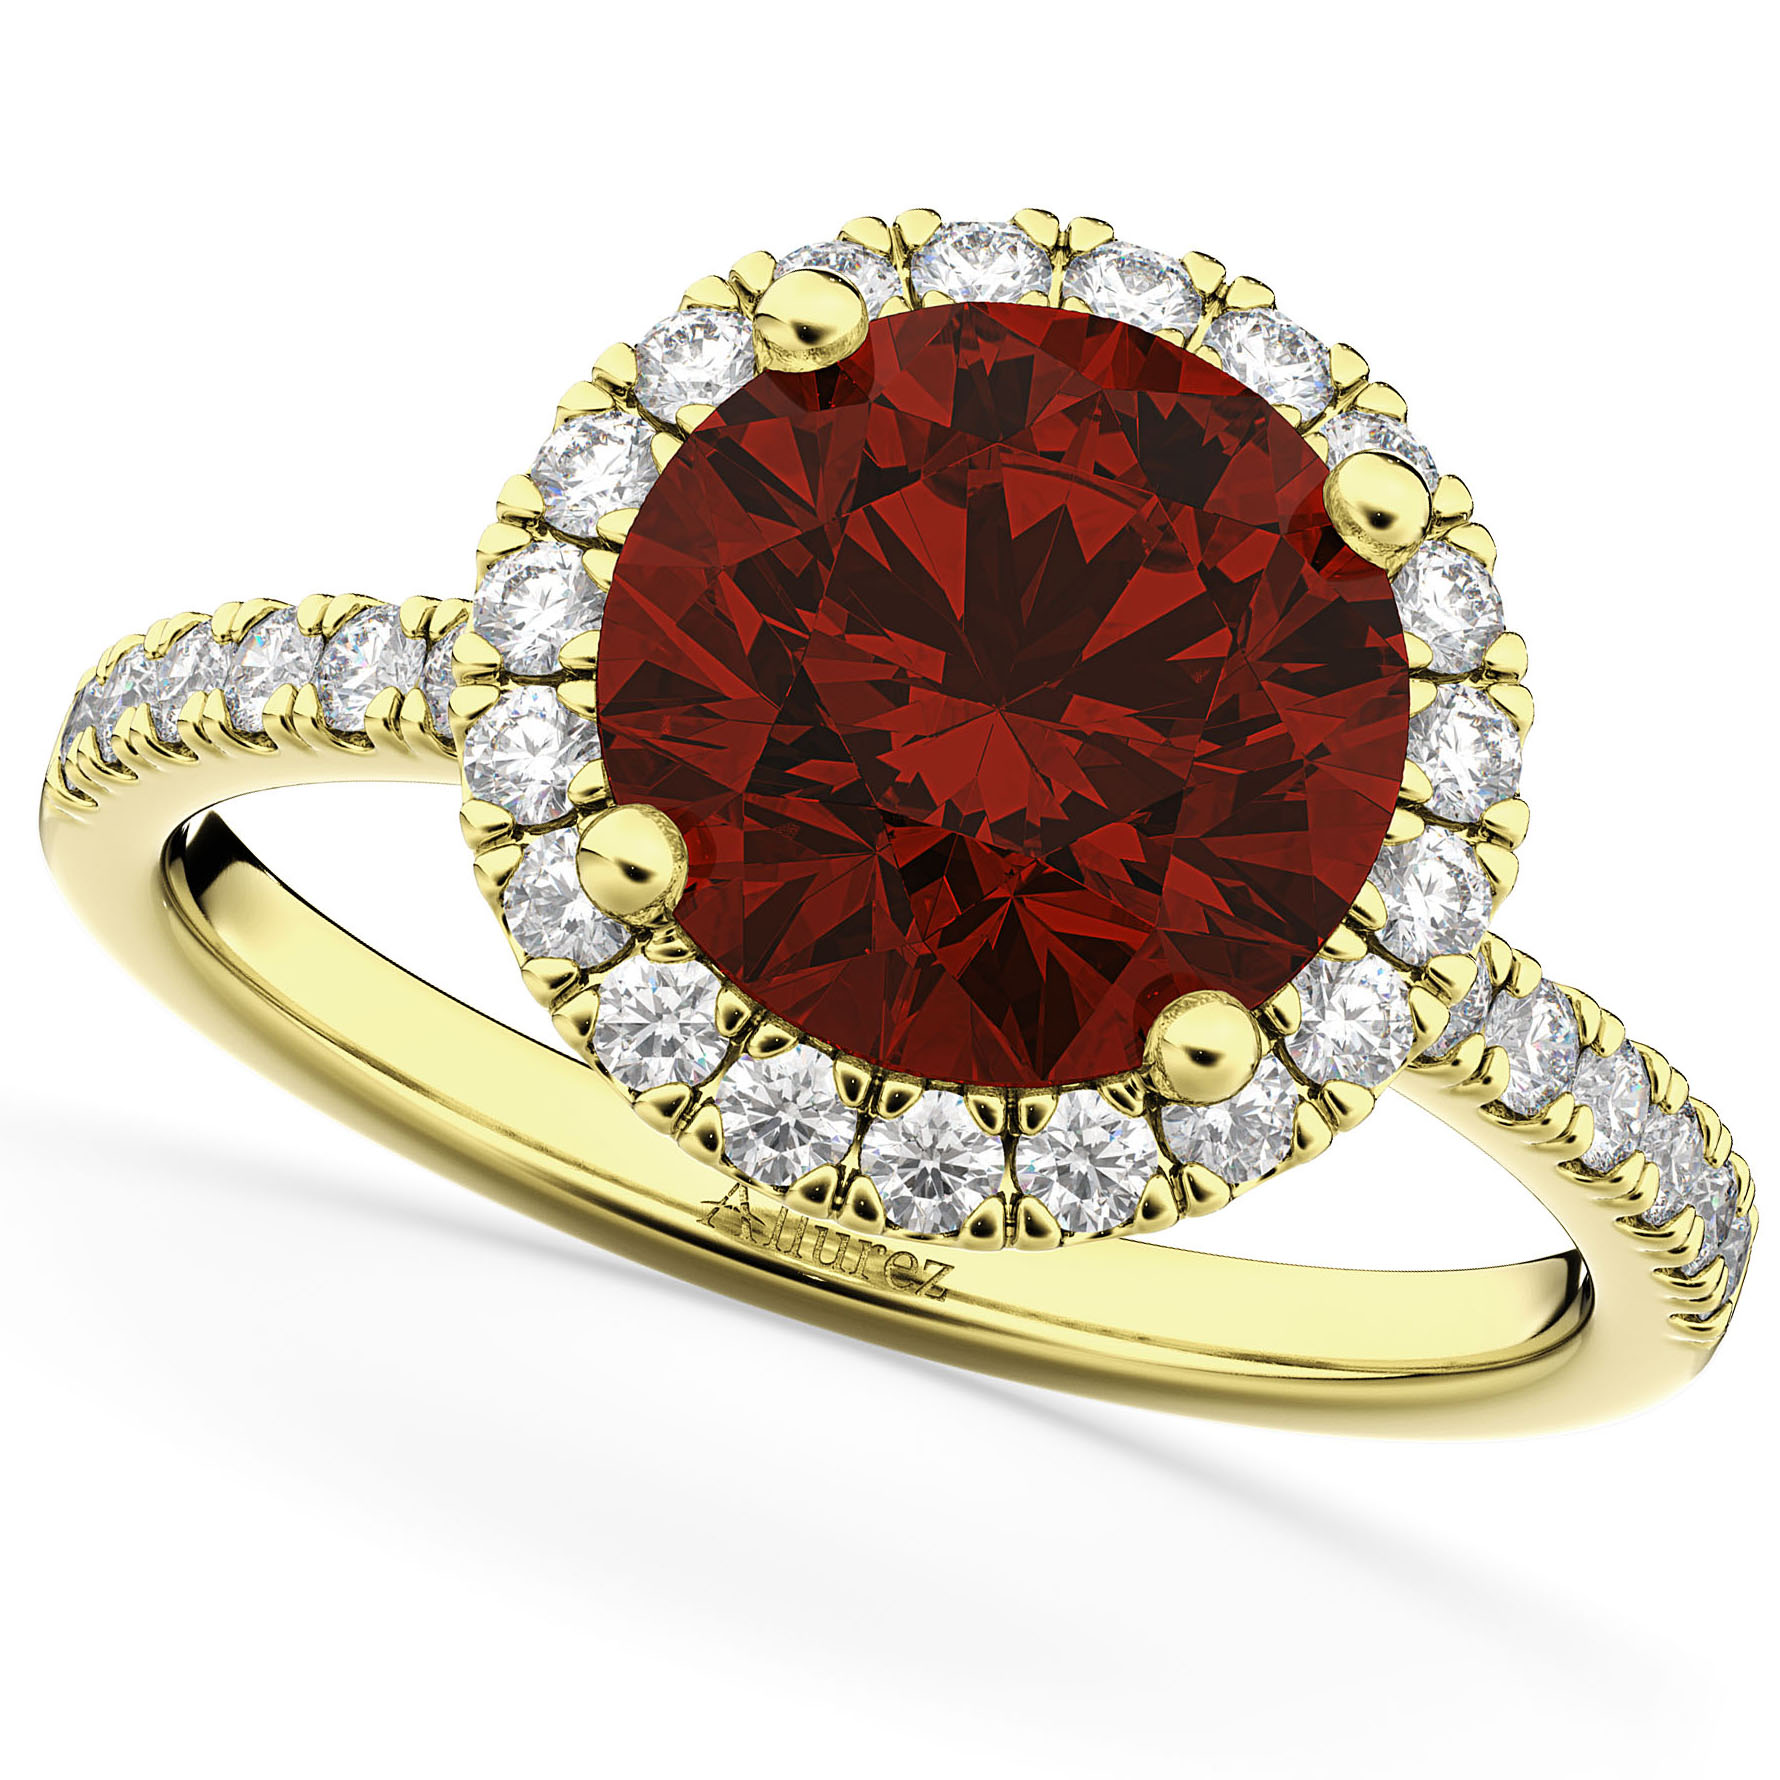 Halo Garnet & Diamond Engagement Ring 14K Yellow Gold 3.00ct